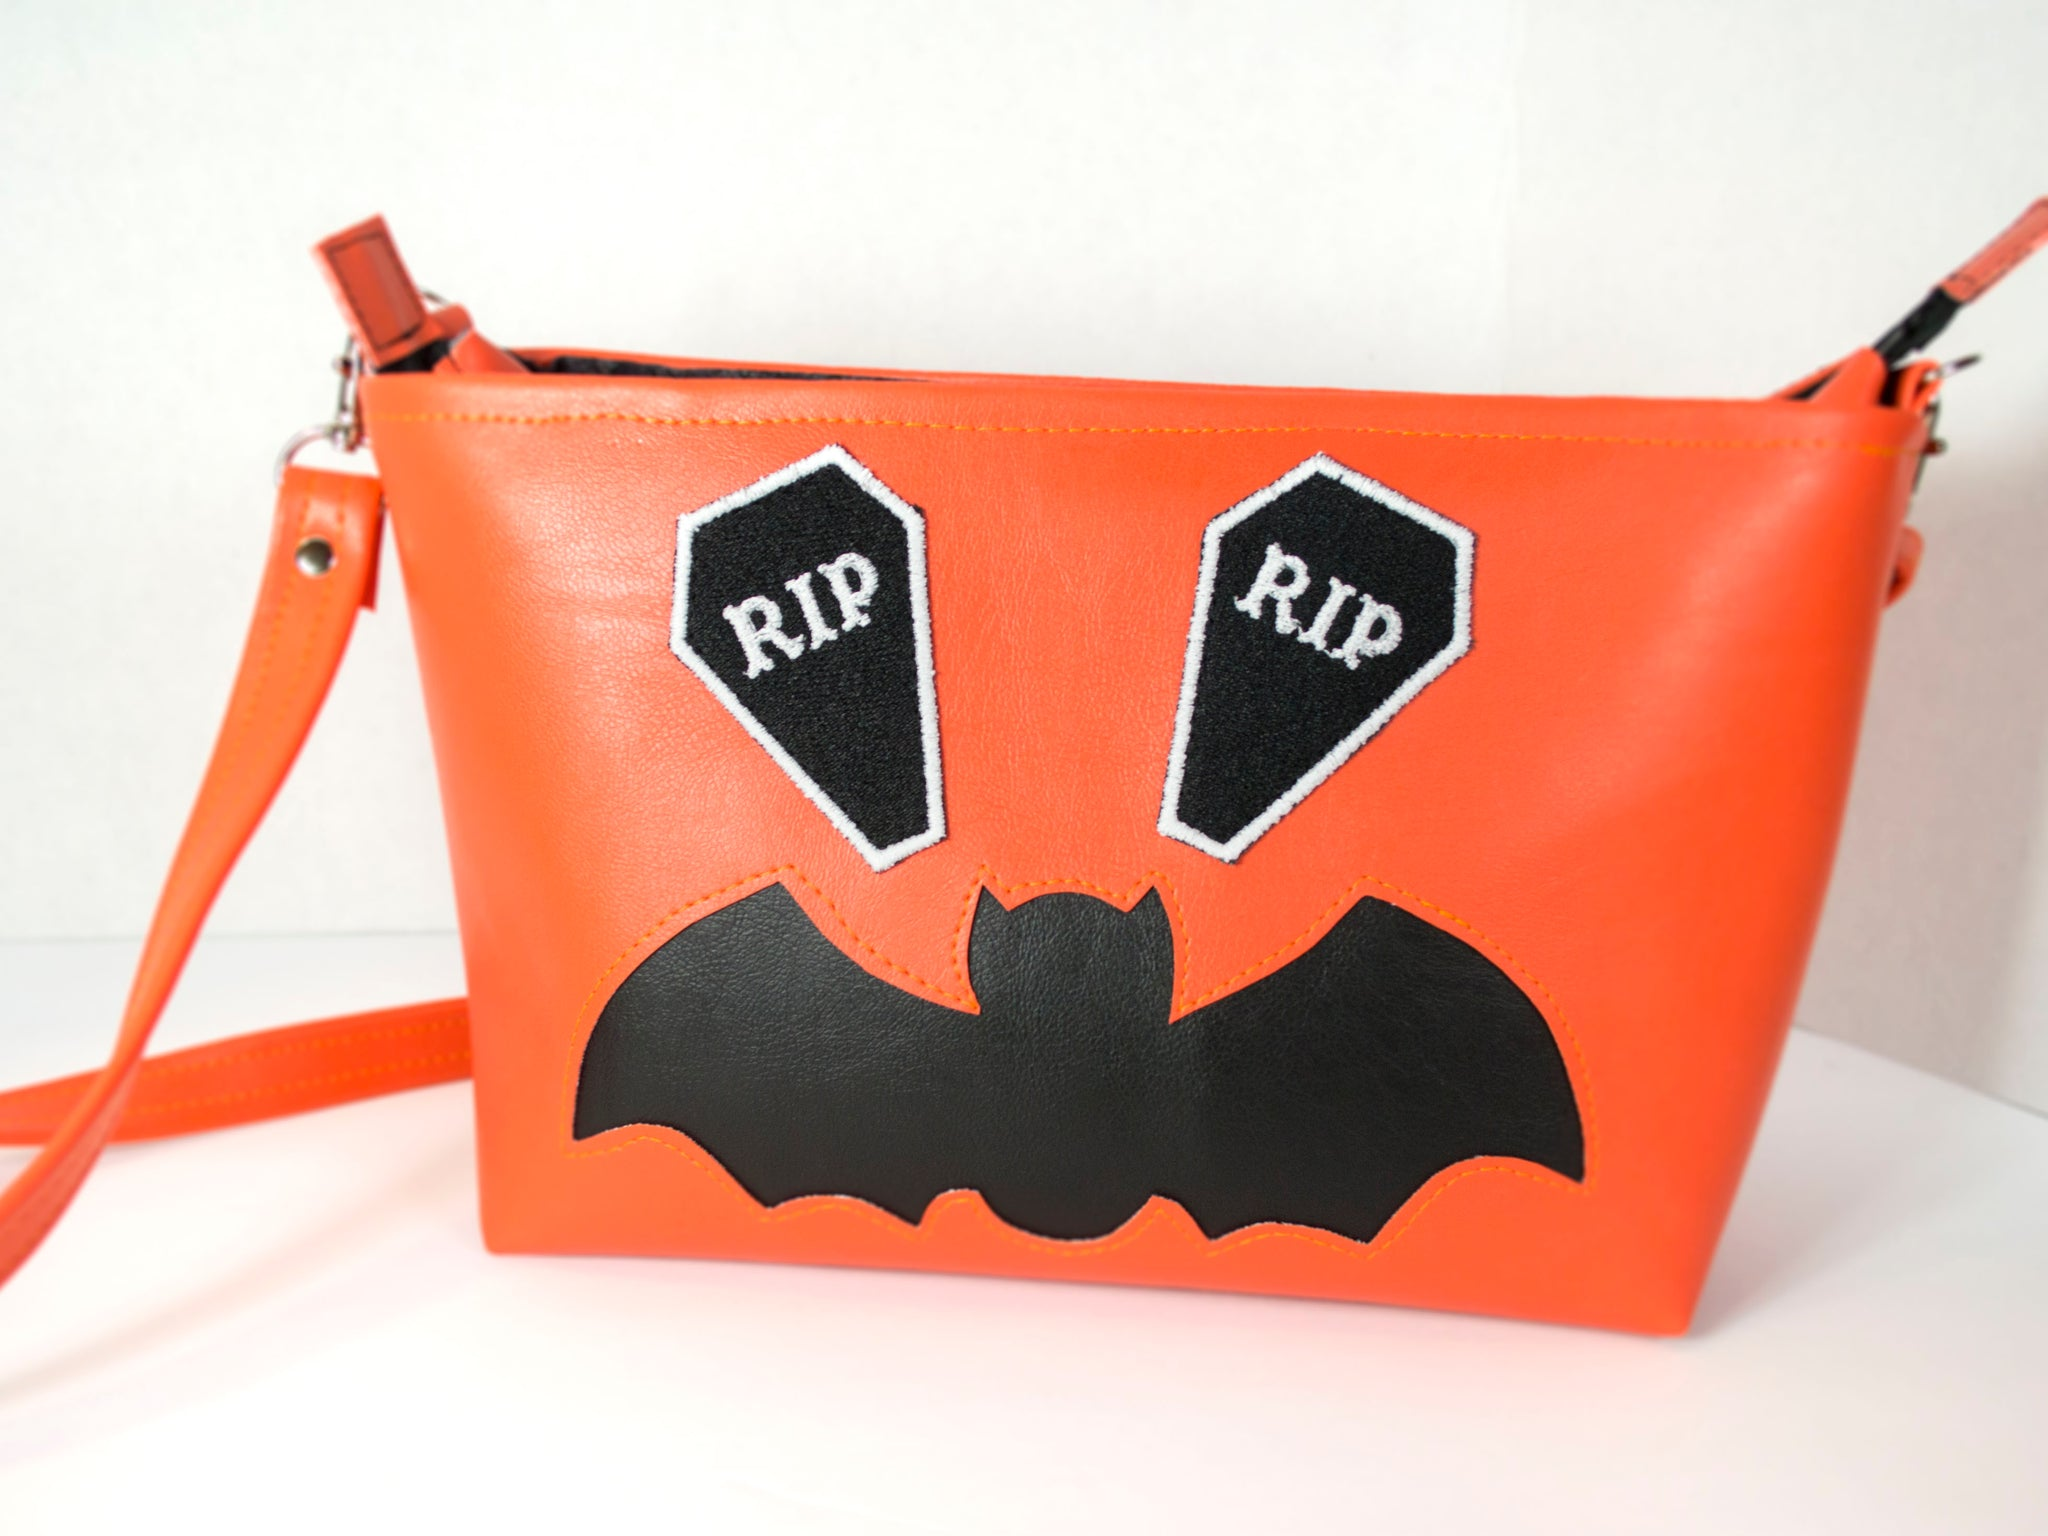 Halloween Orange and Black Zipper Tote with Bat and Coffins